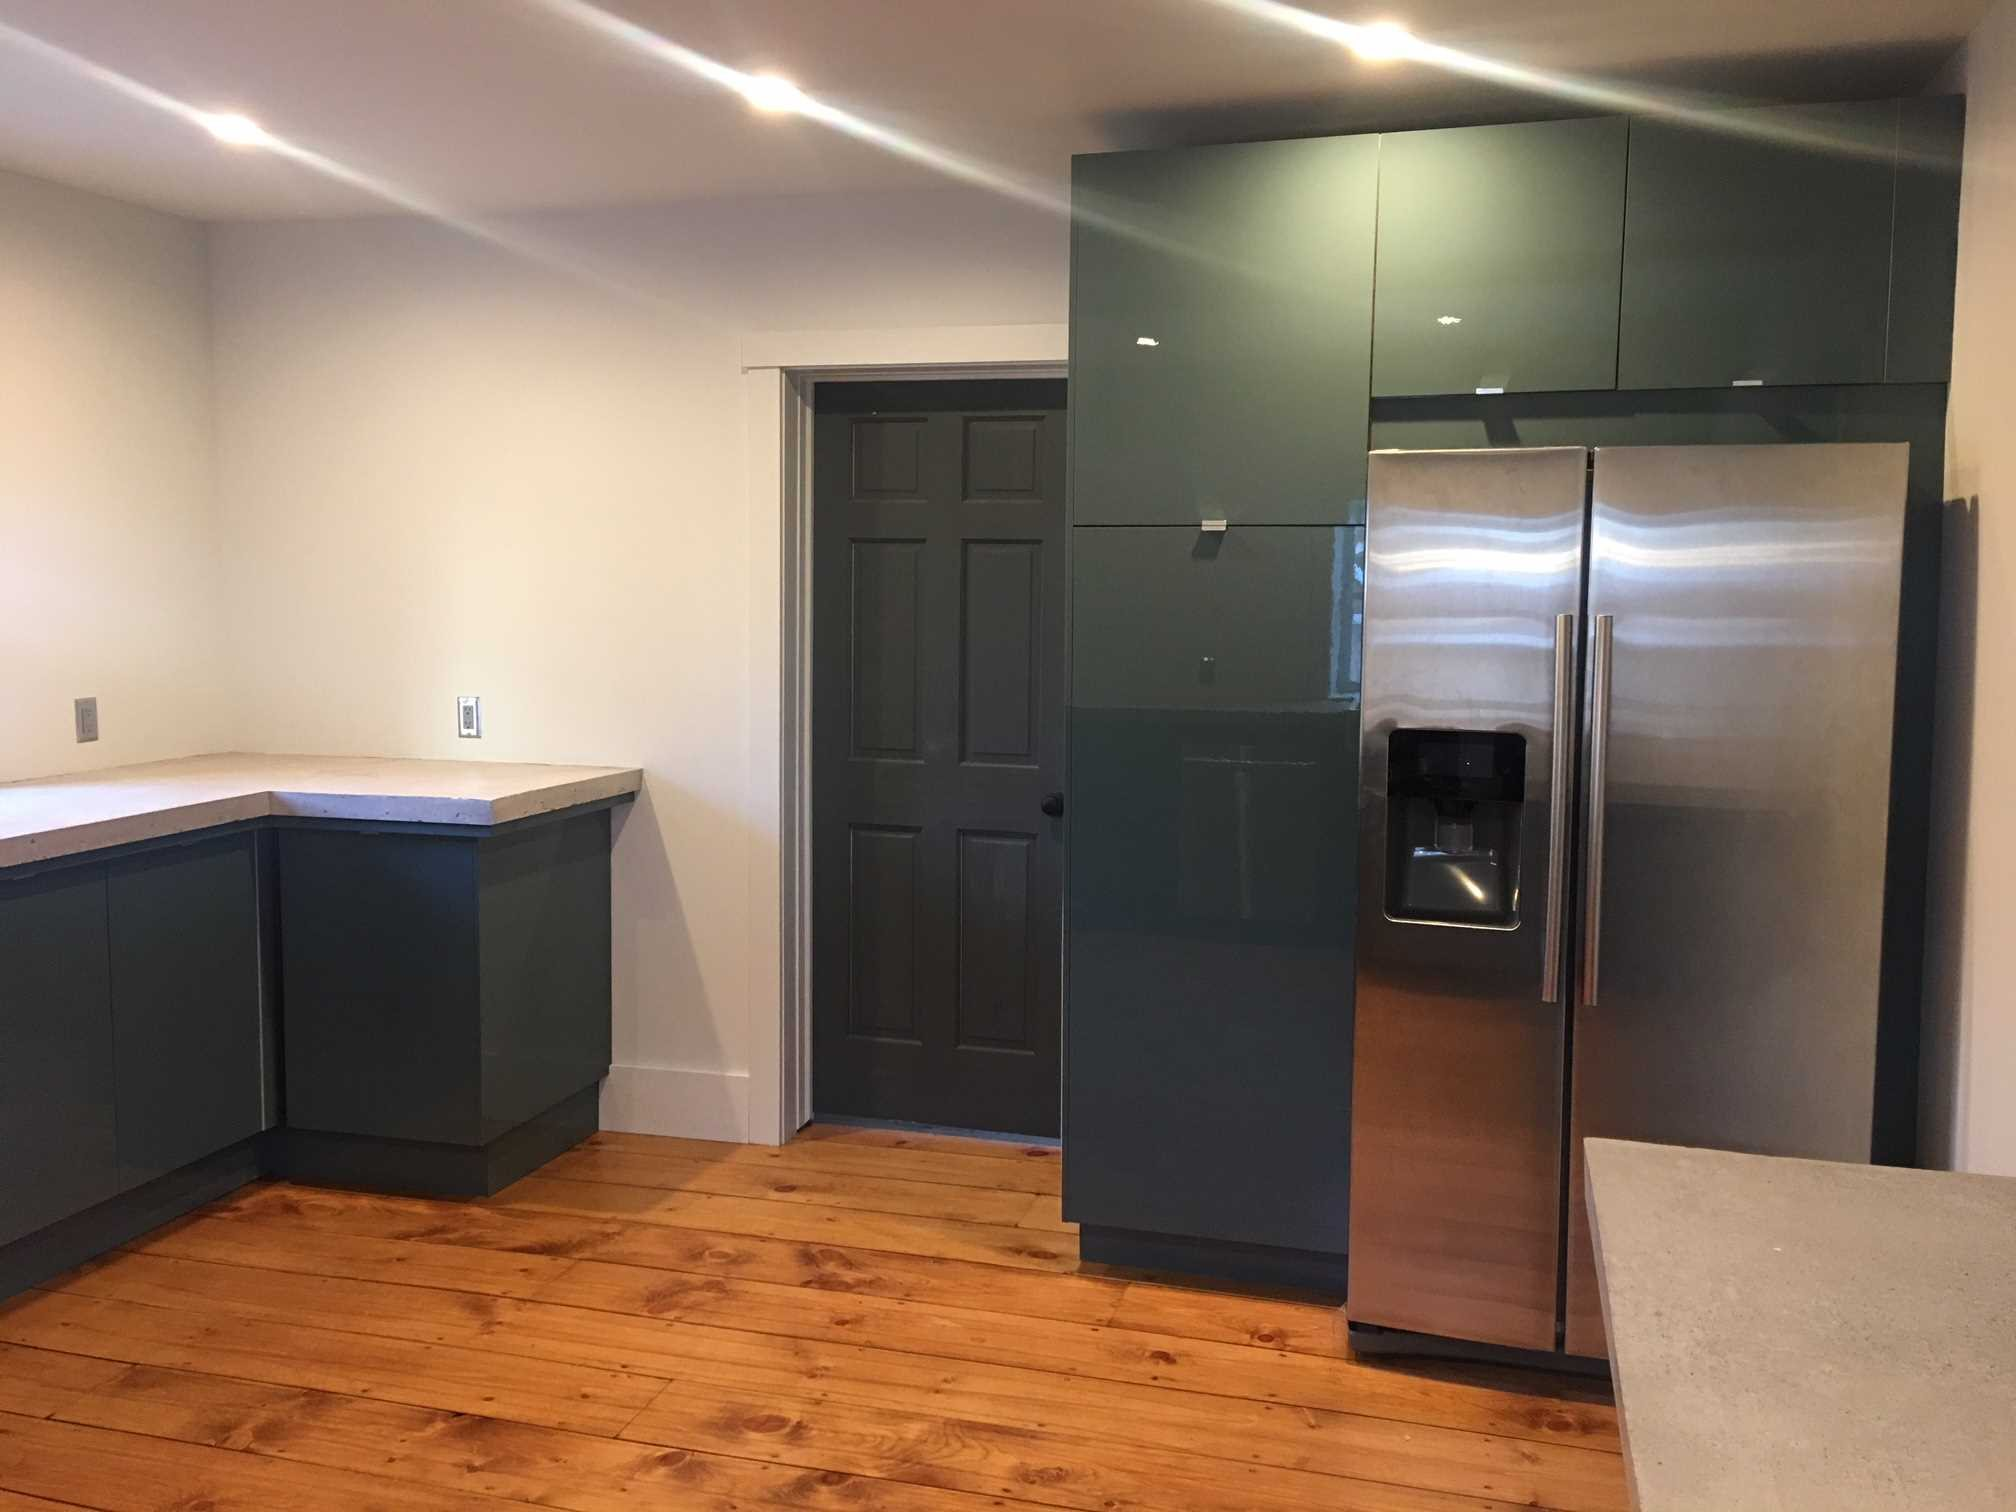 Additional photo for property listing at 6 CENTER Street 6 CENTER Street Beacon, New York 12508 United States